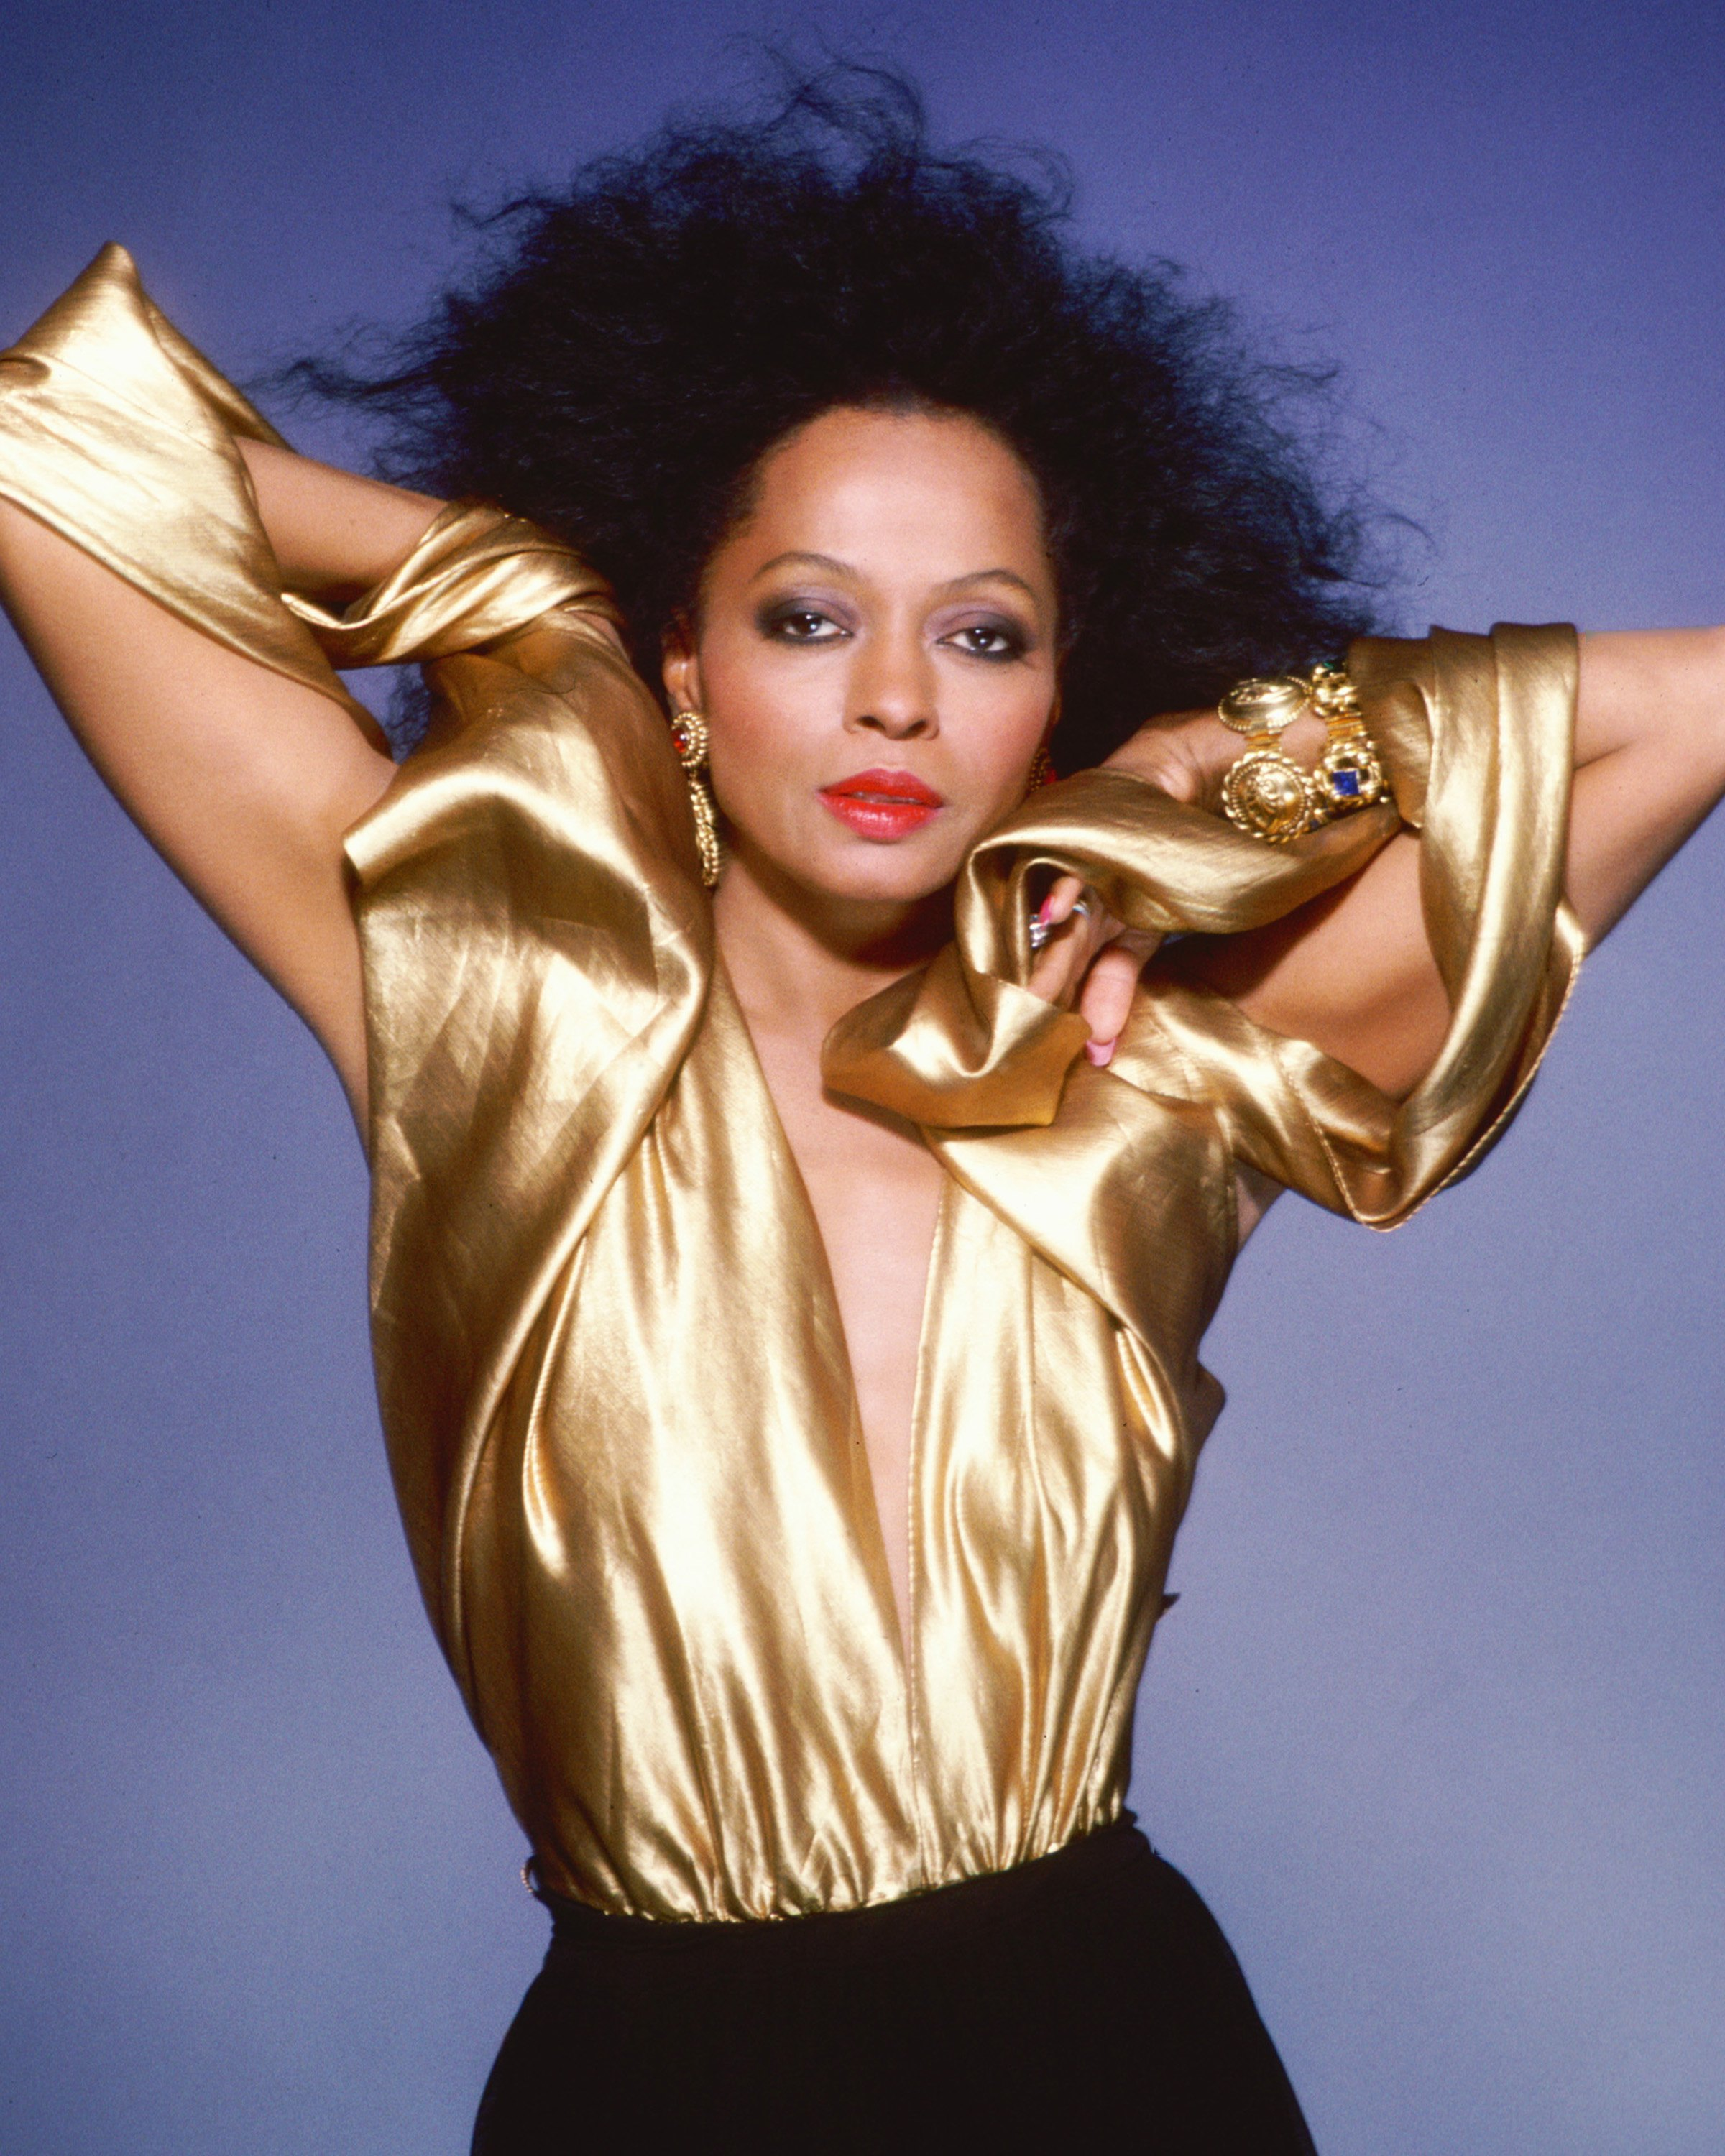 diana ross musclesdiana ross i will survive, diana ross – upside down, diana ross chain reaction, diana ross 2016, diana ross chain reaction скачать, diana ross mp3, diana ross i will survive скачать, diana ross upside down скачать, diana ross слушать, diana ross love hangover перевод, diana ross скачать песни, diana ross touch me in the morning, diana ross and the supremes, diana ross & the supremes love child, diana ross i will survive mp3, diana ross instagram, diana ross it's your move lyrics, diana ross i'm coming out lyrics, diana ross youtube, diana ross muscles